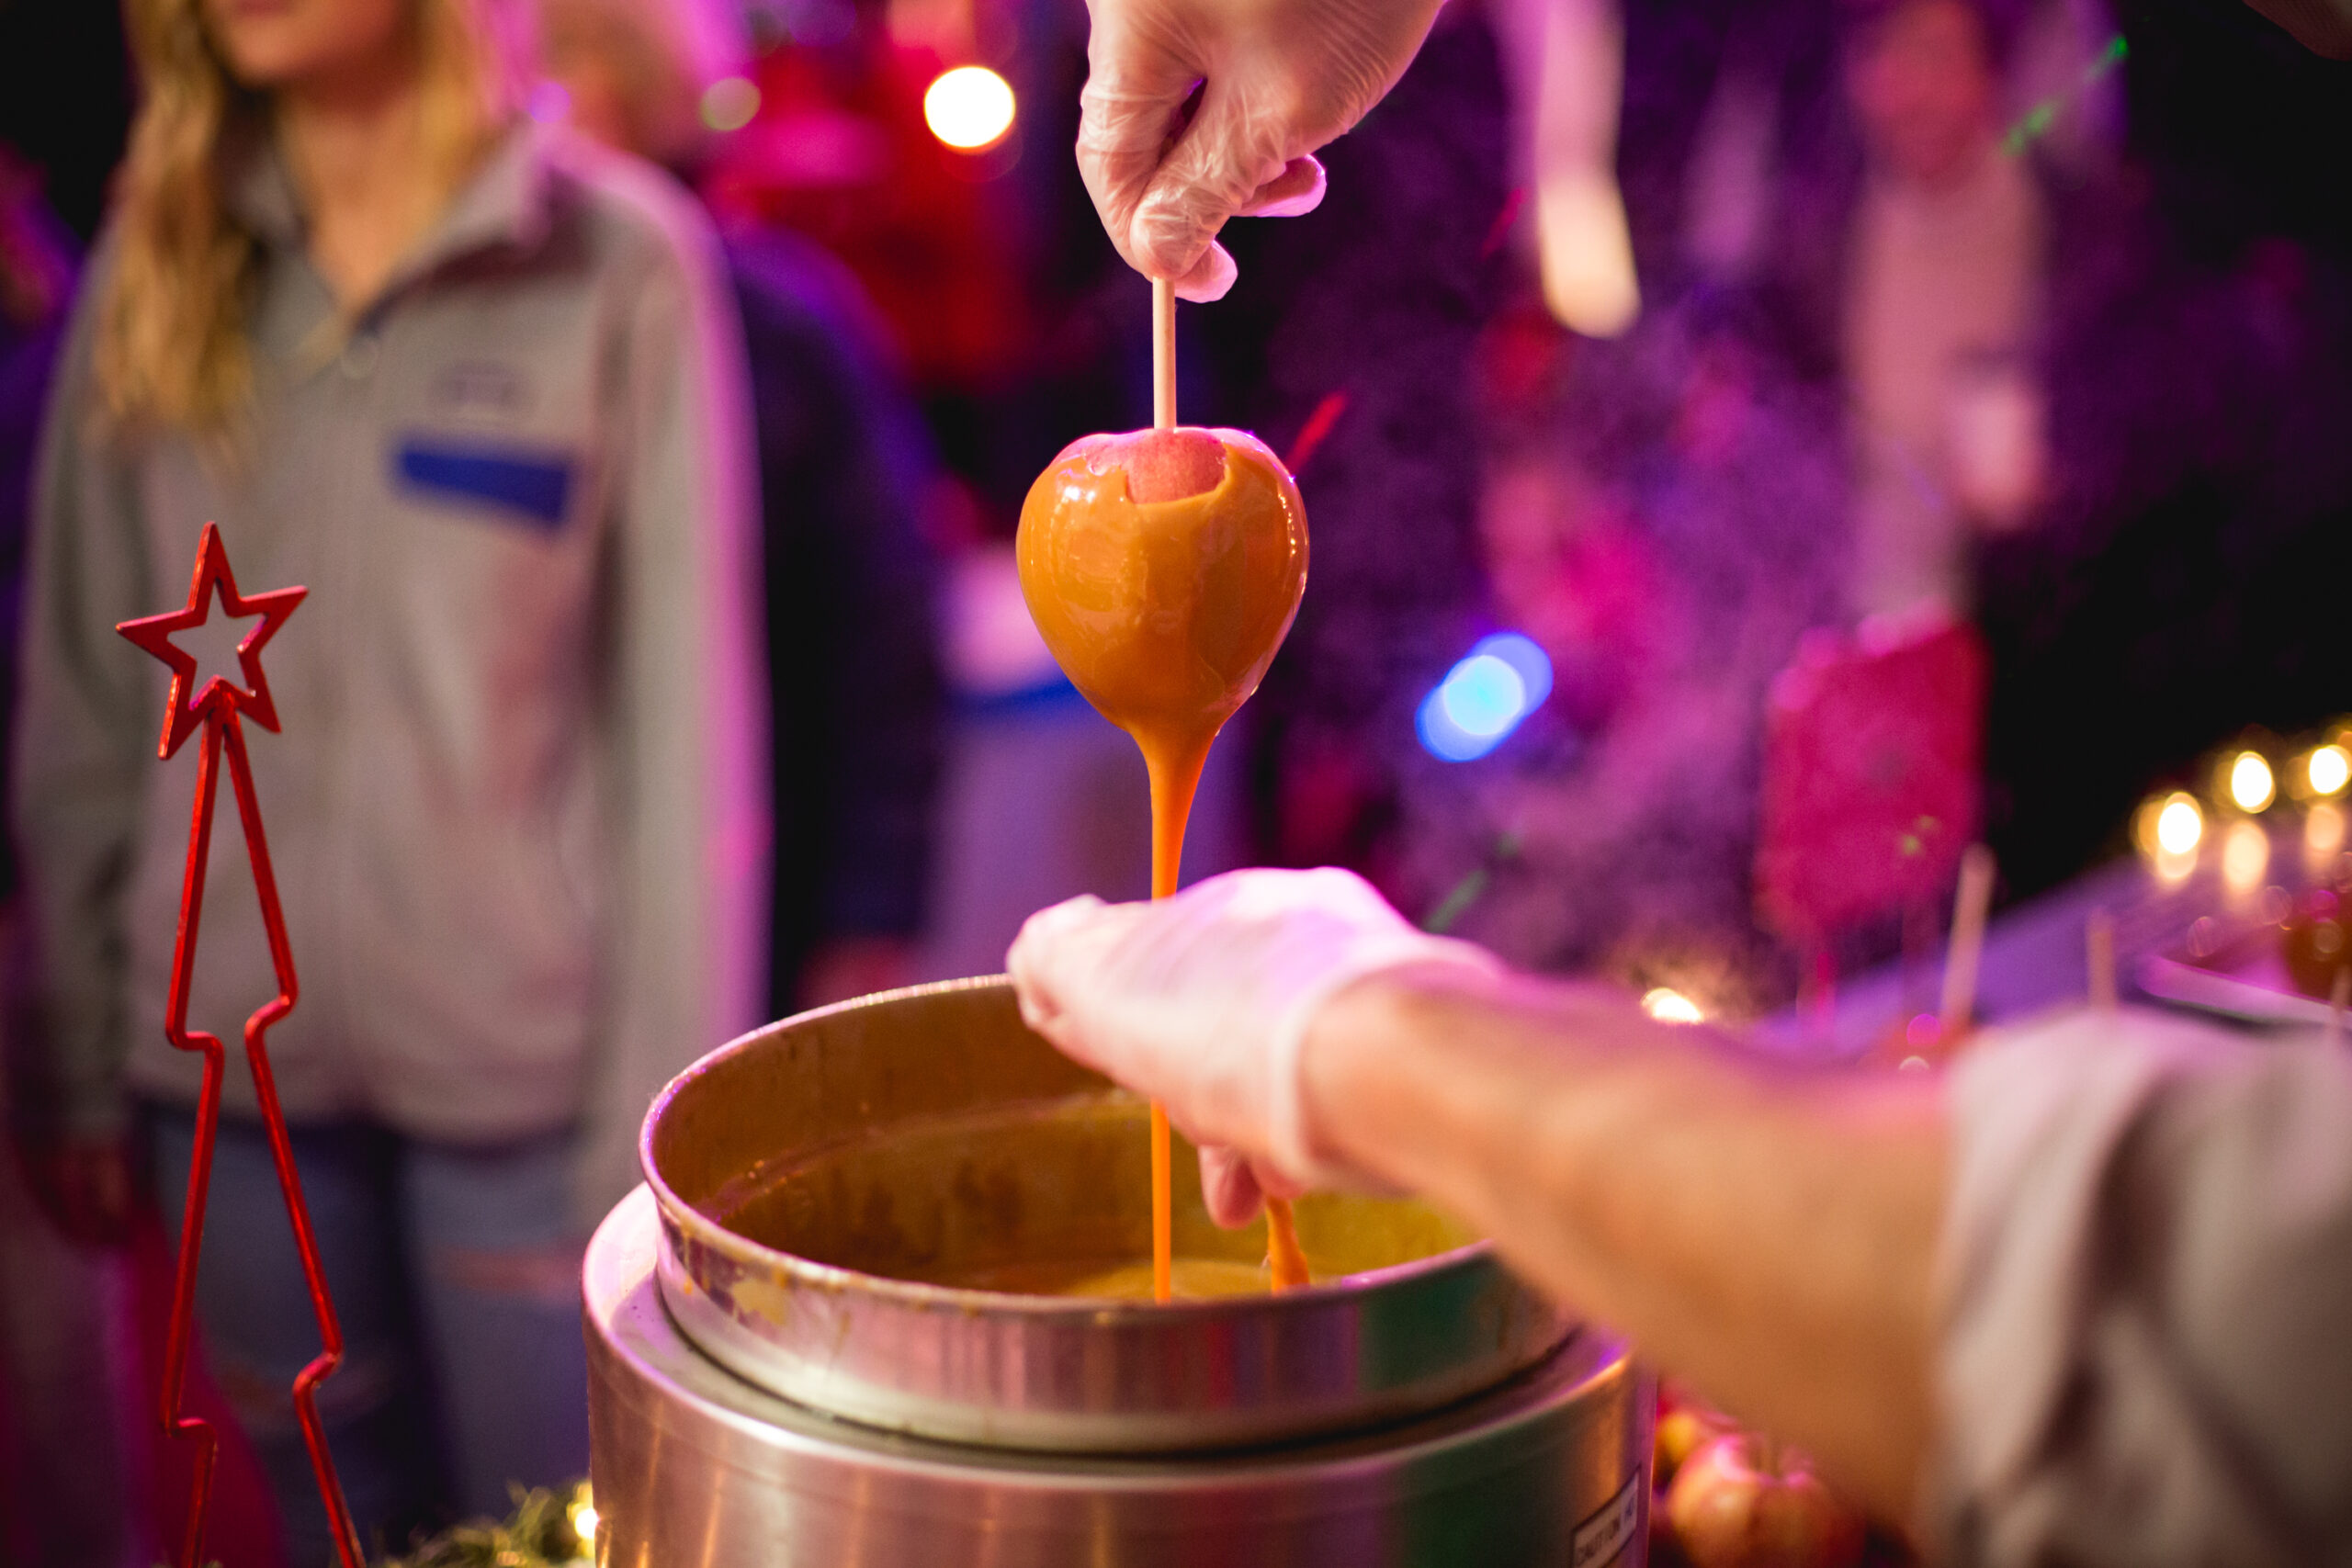 Caramel Apple at Trail of Lights Austin